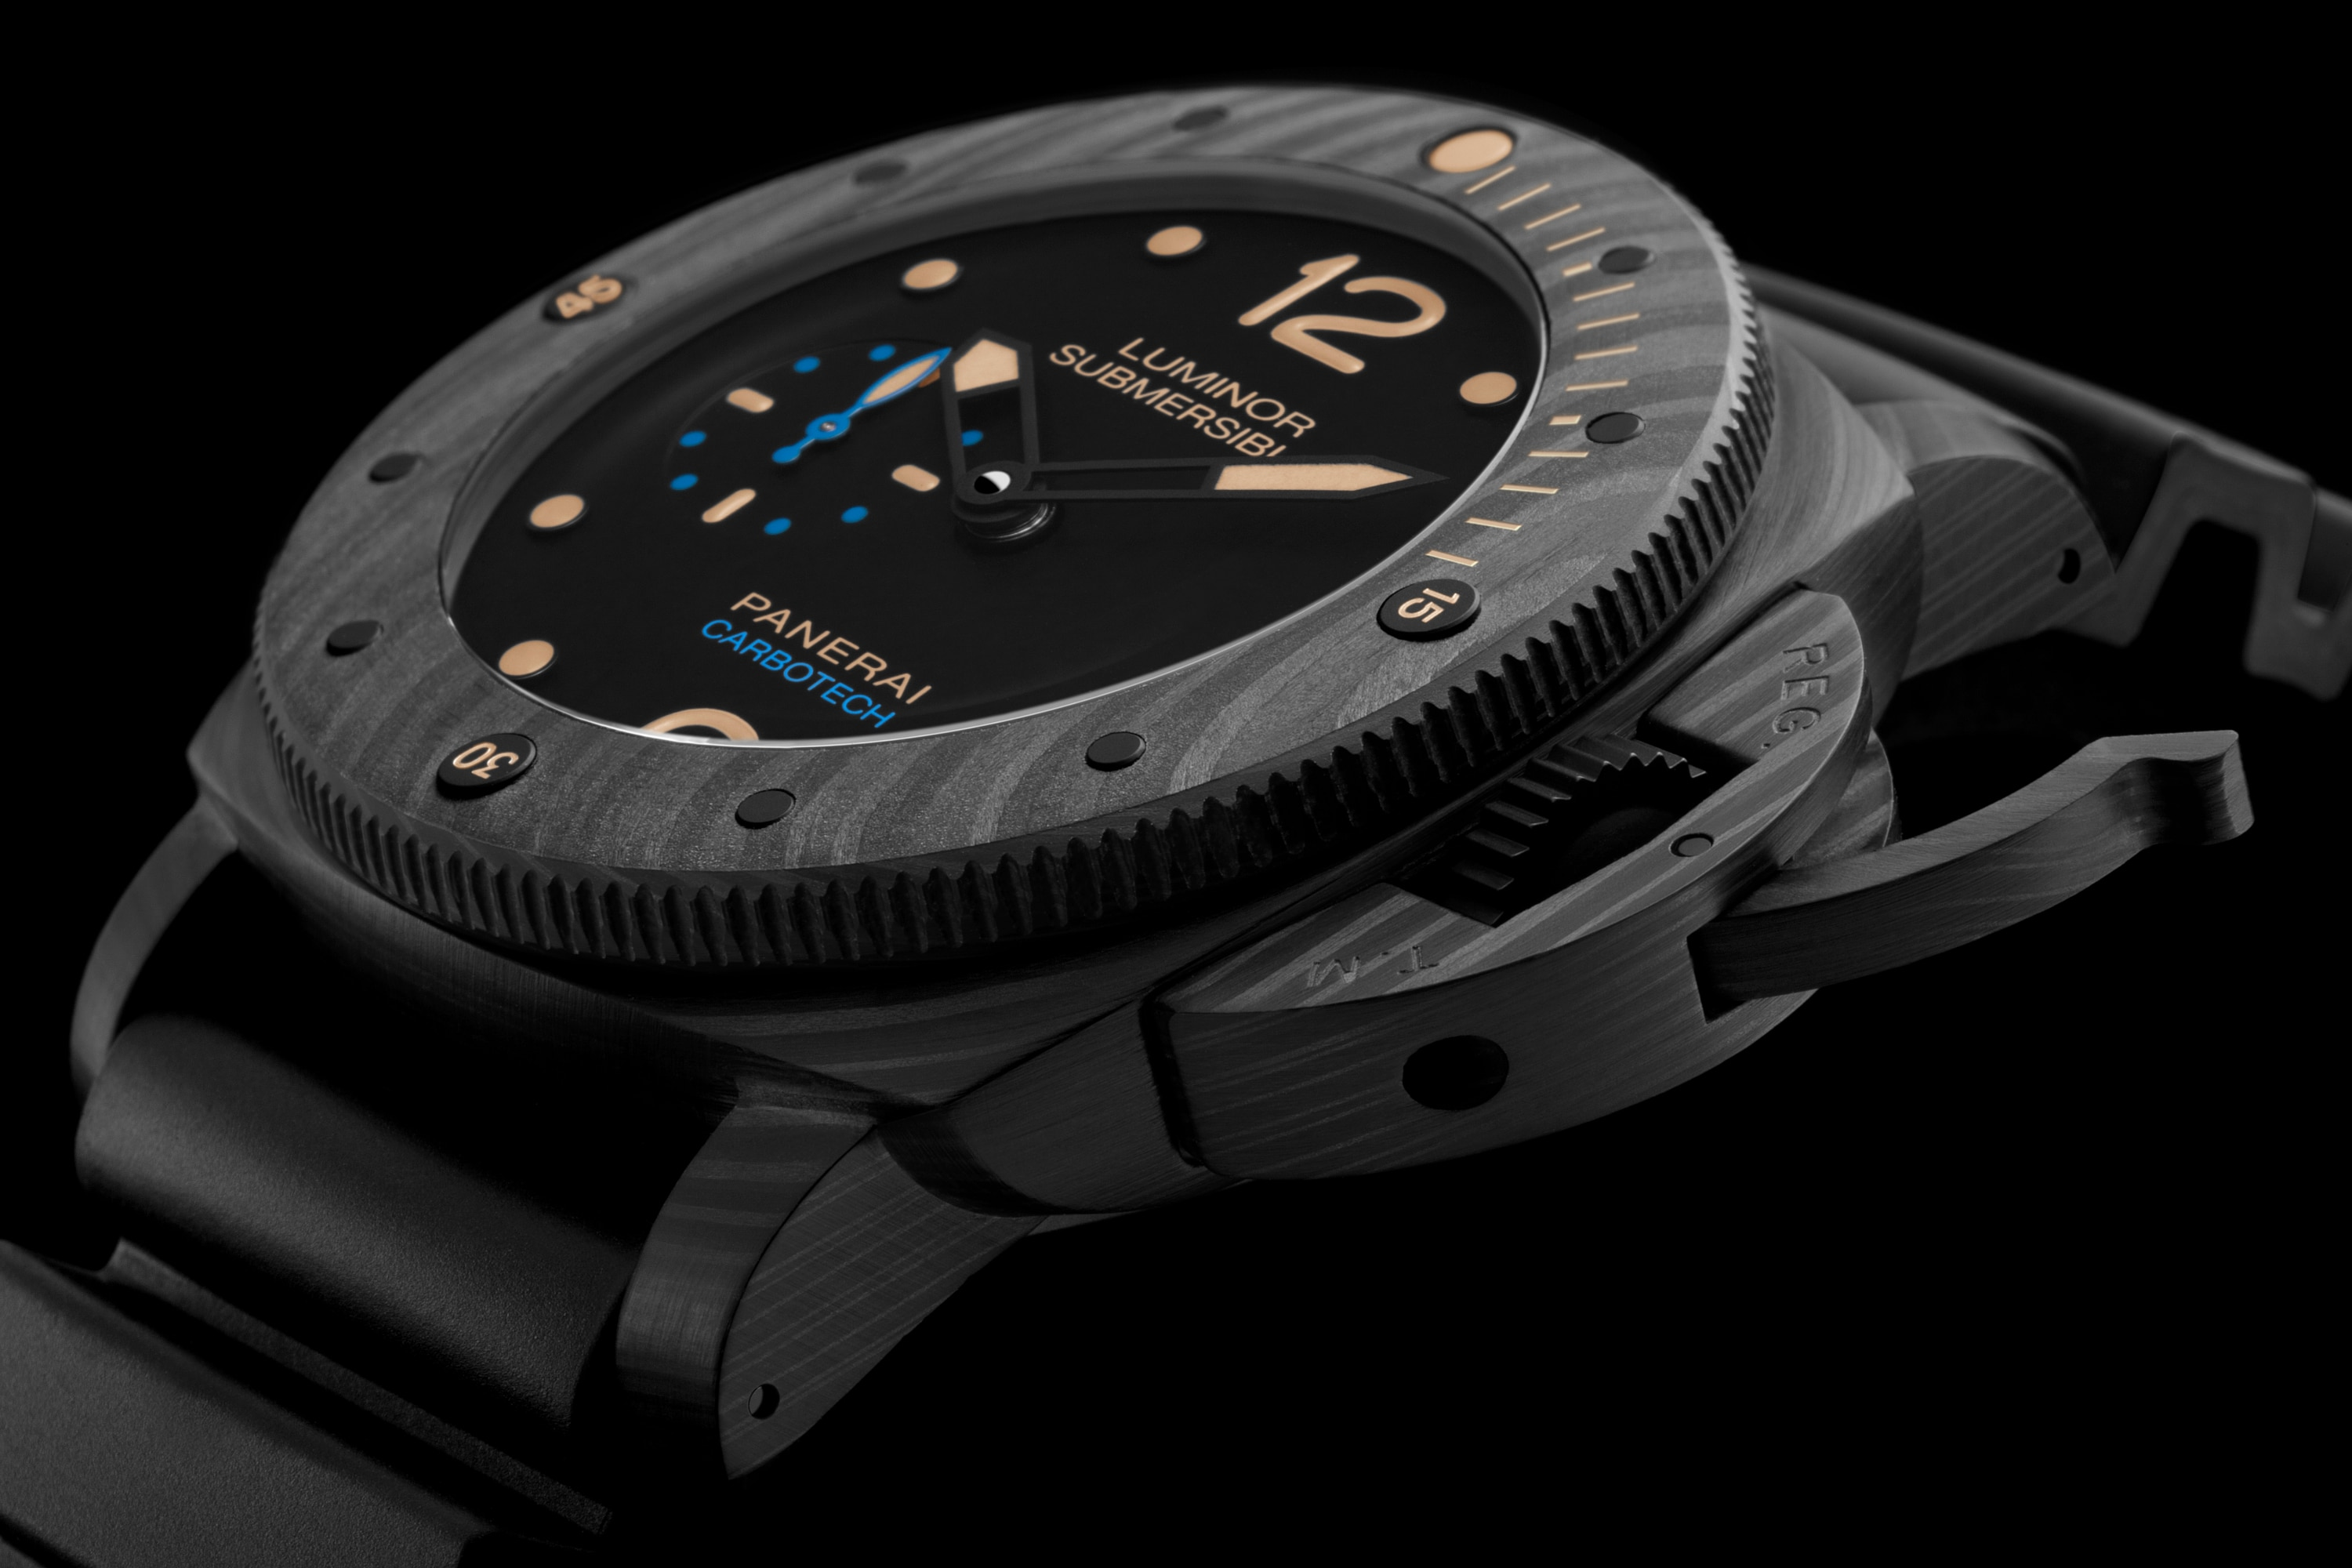 PNPAM00616 - Submersible Carbotech™ - 47mm